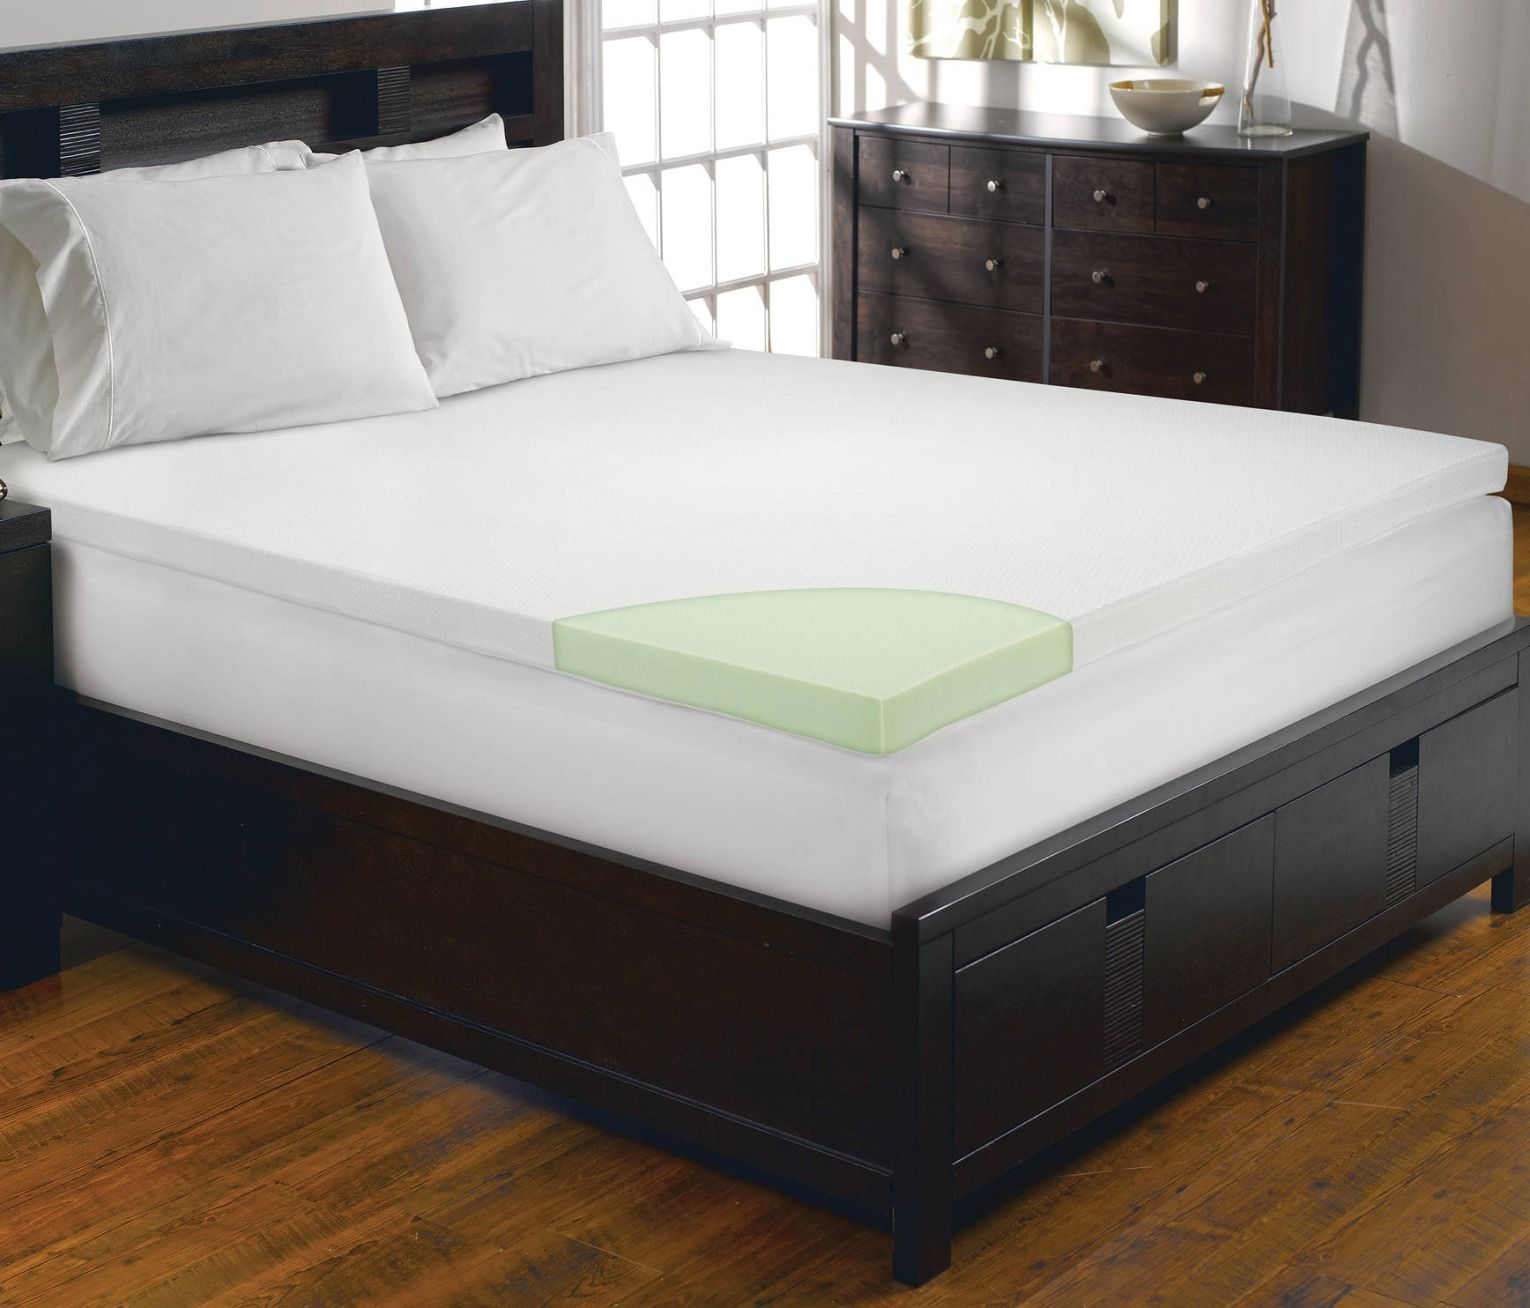 3 Rise Foam Mattress Topper From Better Homes And Gardens At